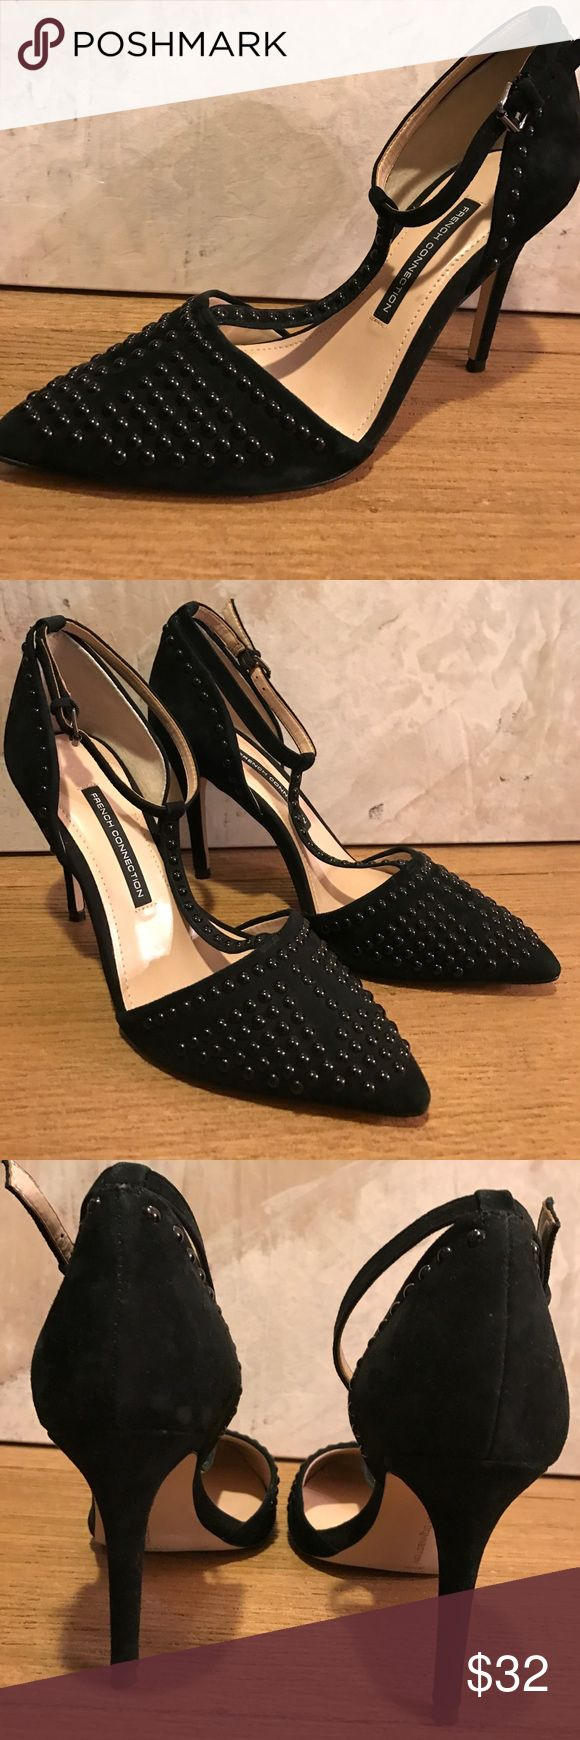 "New French Connection black studded sandals New elegant black suede heels with black stud accents. Adjustable side ankle strap - heel is 4"" inches. Striking pair of shoes in size 9. Ships same day French Connection Shoes Sandals"